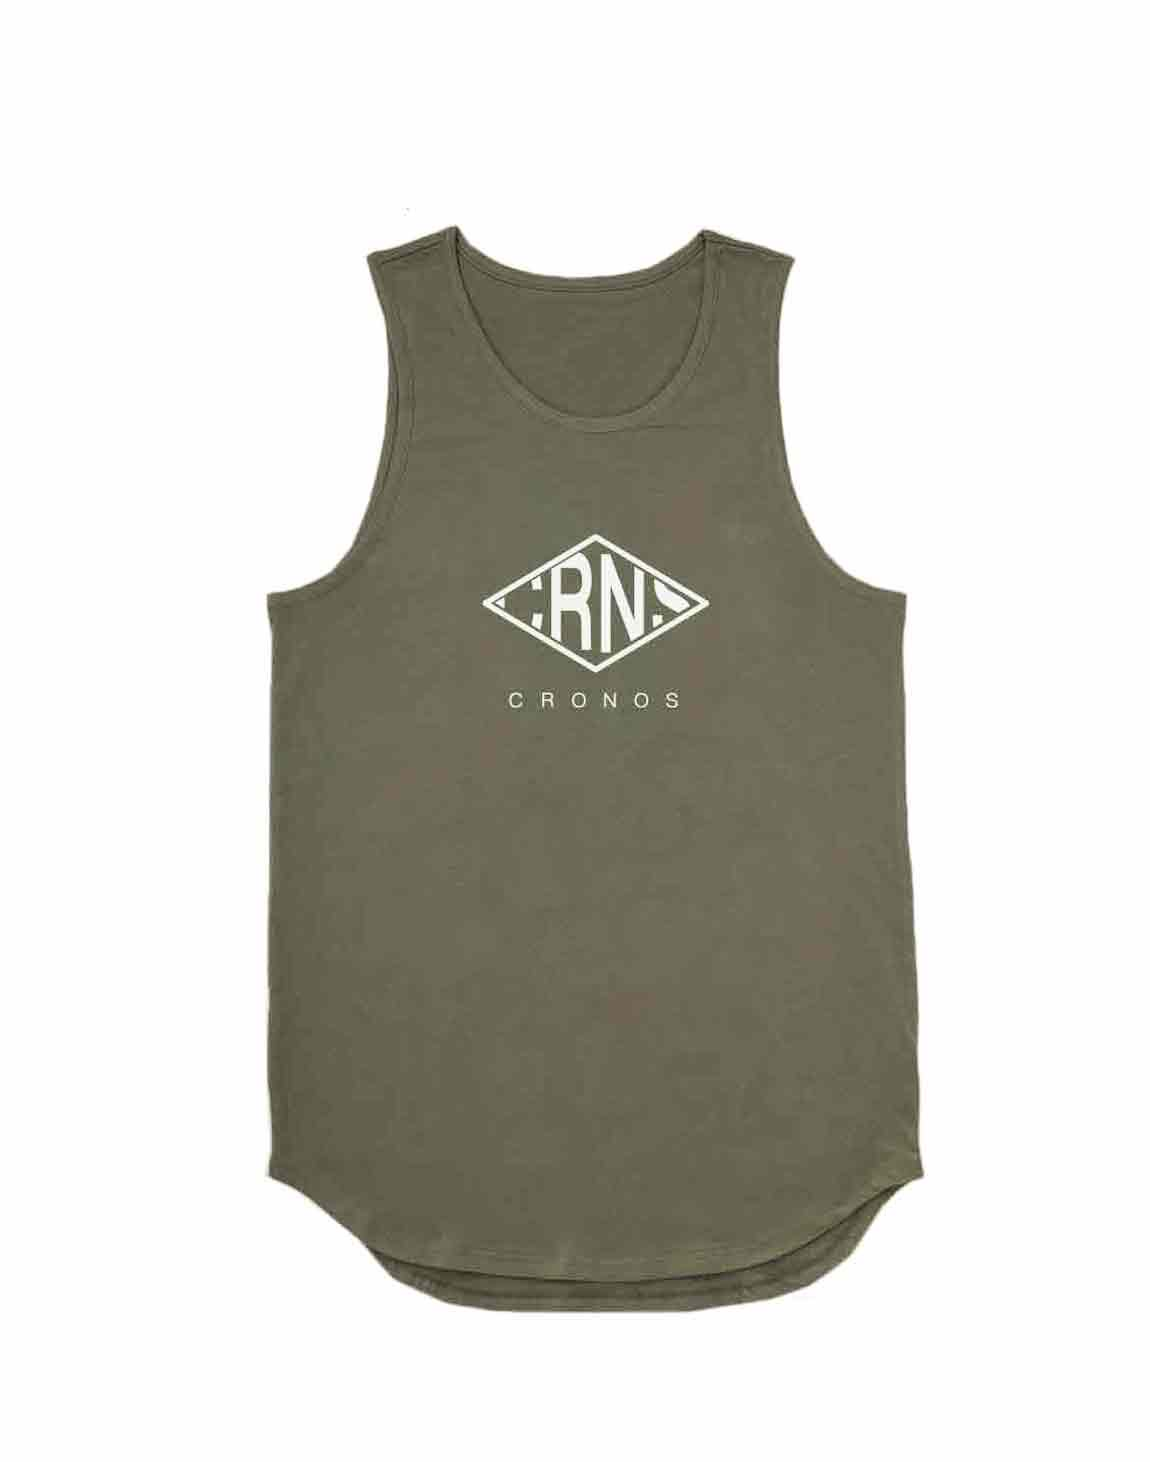 <img class='new_mark_img1' src='https://img.shop-pro.jp/img/new/icons55.gif' style='border:none;display:inline;margin:0px;padding:0px;width:auto;' />CRNS RHOMBUS LOGO TANKTOP【KHAKI】